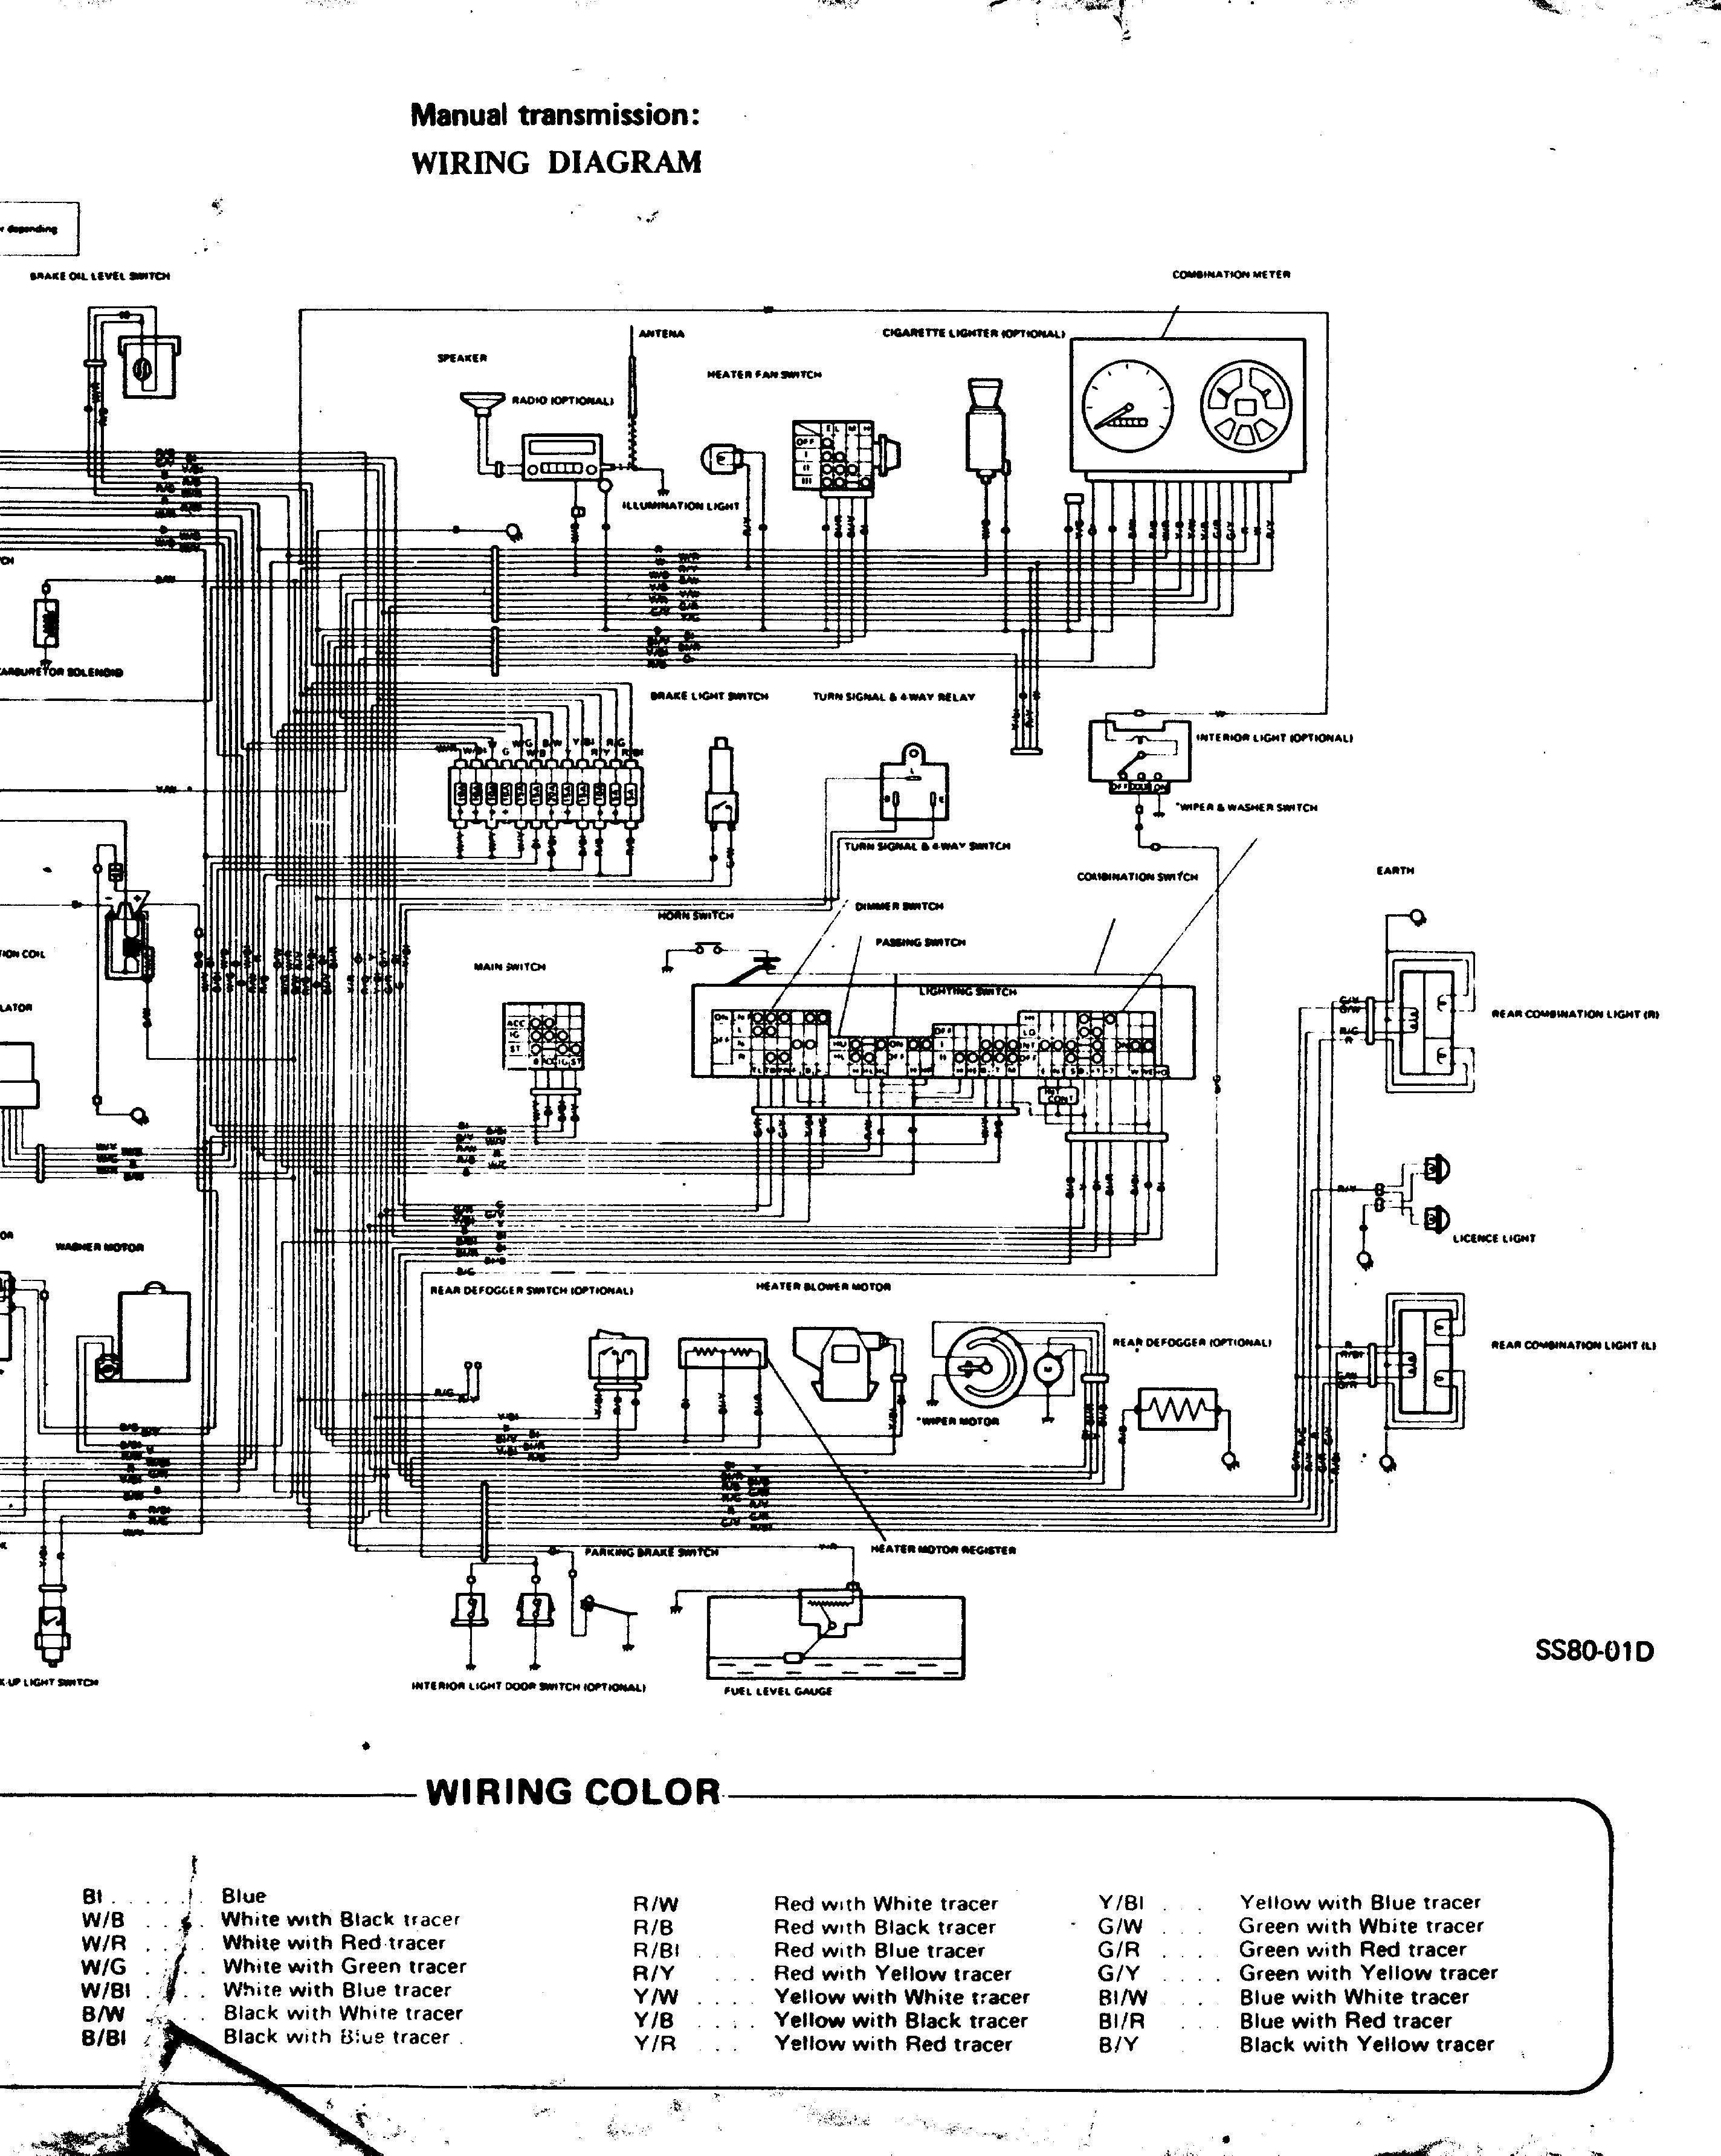 Suzuki Bandit Wiring Diagram Free - 18.6.kenmo-lp.de • on hvac diagrams, electrical diagrams, sincgars radio configurations diagrams, engine diagrams, lighting diagrams, electronic circuit diagrams, troubleshooting diagrams, switch diagrams, series and parallel circuits diagrams, friendship bracelet diagrams, gmc fuse box diagrams, internet of things diagrams, transformer diagrams, pinout diagrams, motor diagrams, led circuit diagrams, honda motorcycle repair diagrams, smart car diagrams, battery diagrams, snatch block diagrams,